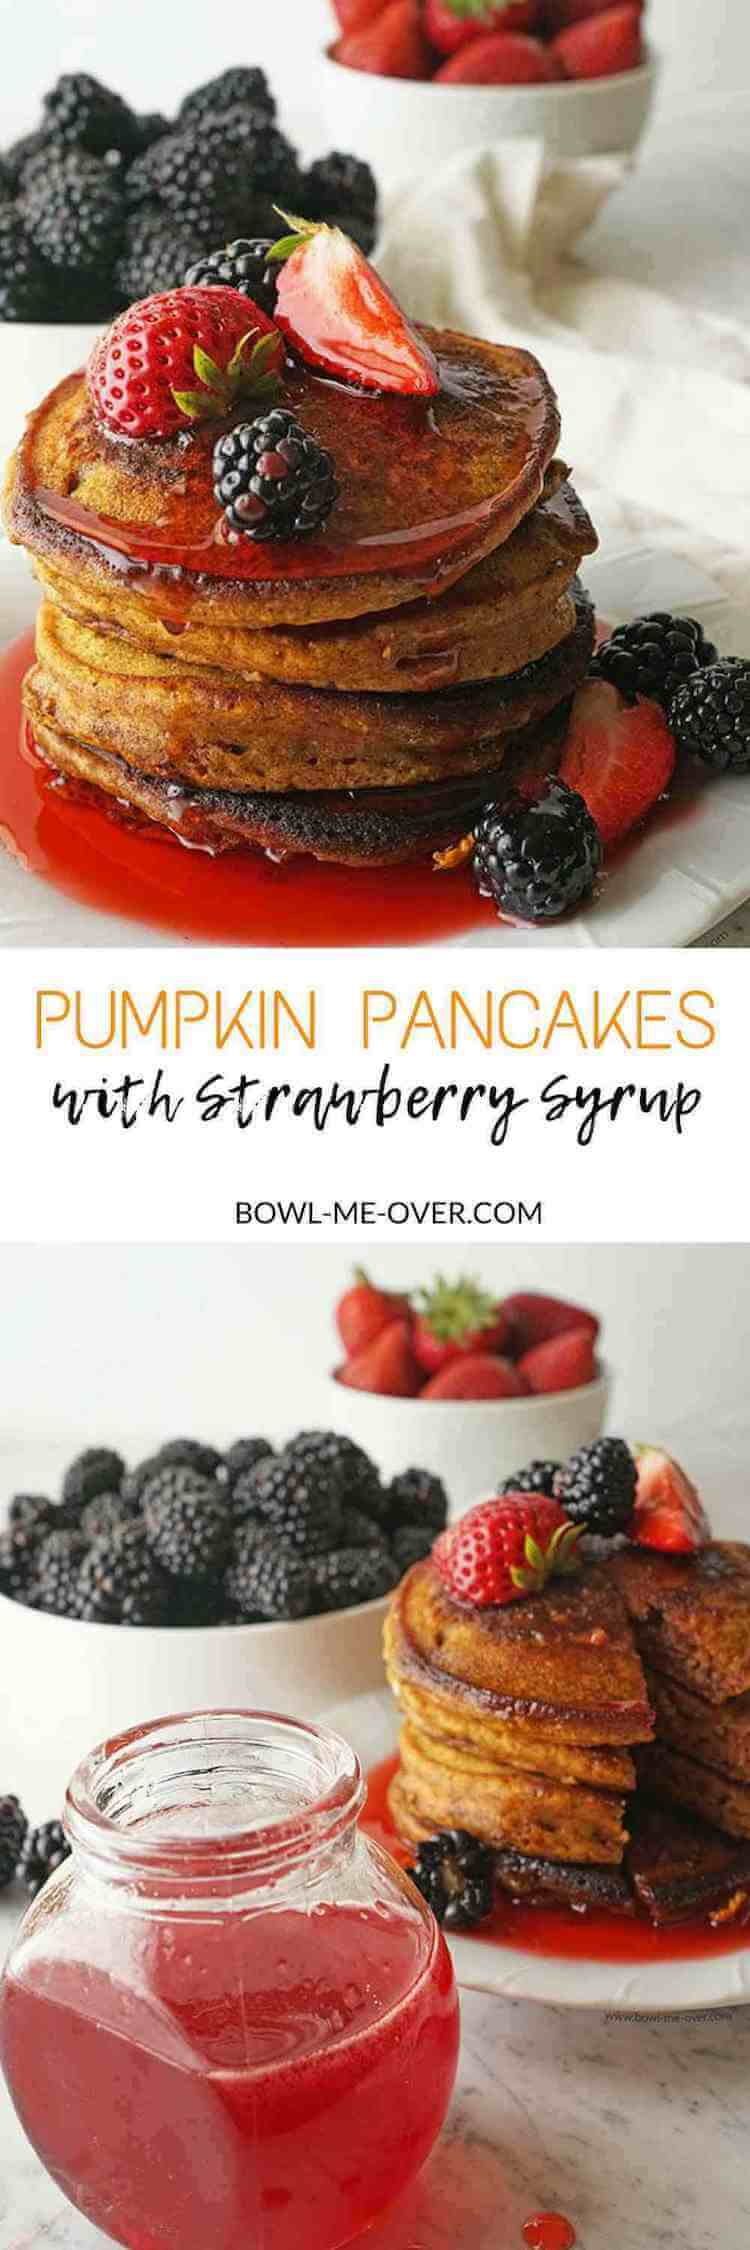 Pumpkin pancakes - light & fluffy and so delicious topped with homemade strawberry syrup, perfect for breakfast, brunch or dinner!